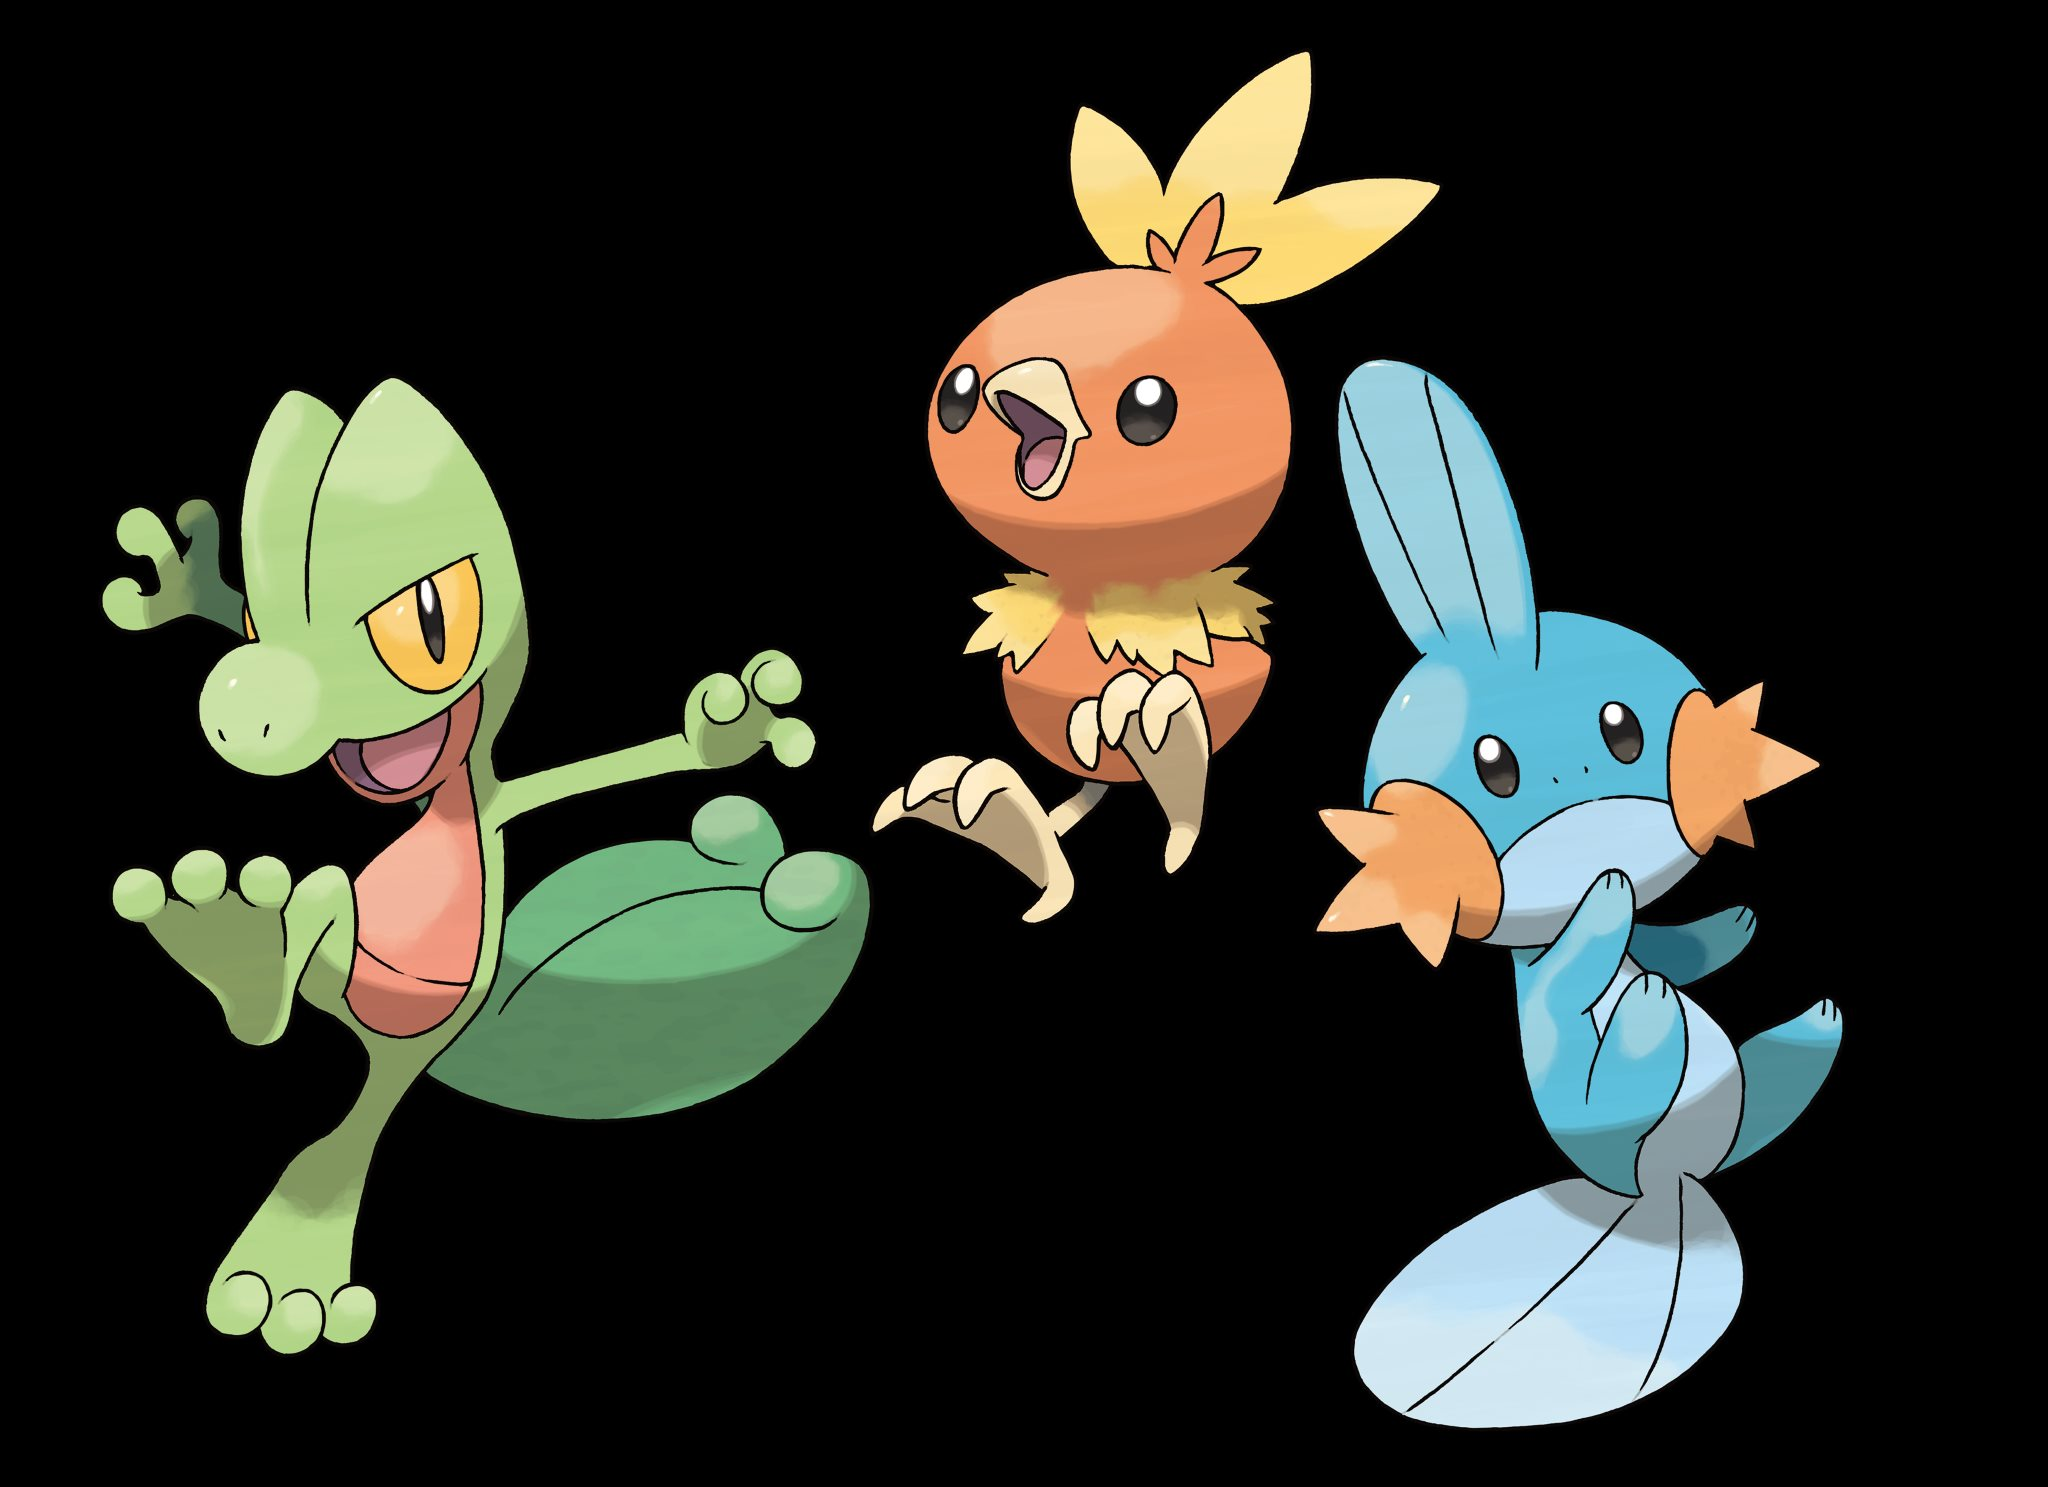 Treecko_Torchic_Mudkip_Group